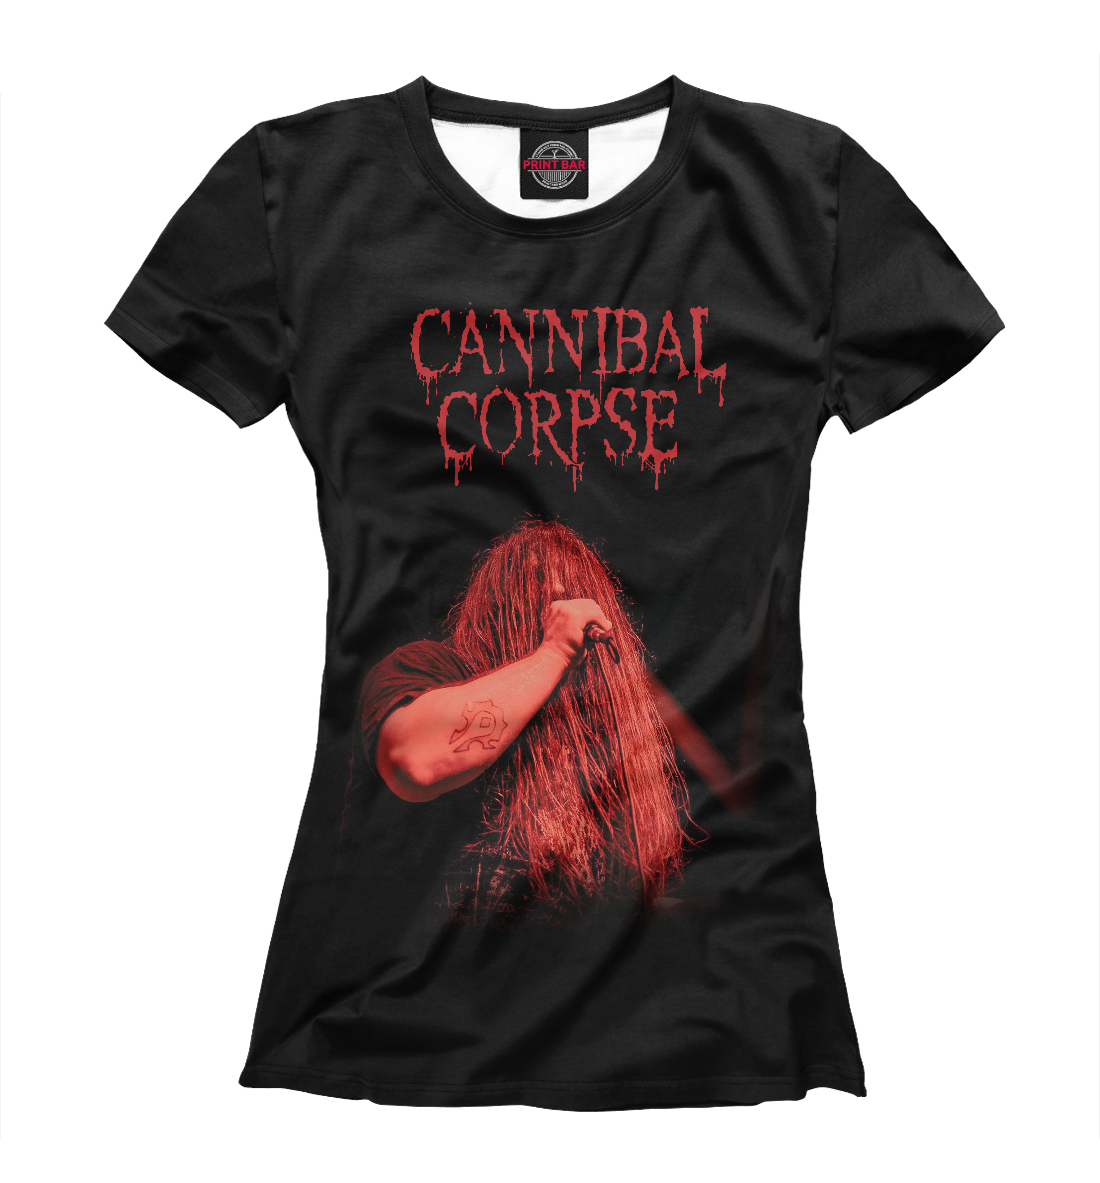 Купить George Fisher (Cannibal Corpse), Printbar, Футболки, MZK-217329-fut-1